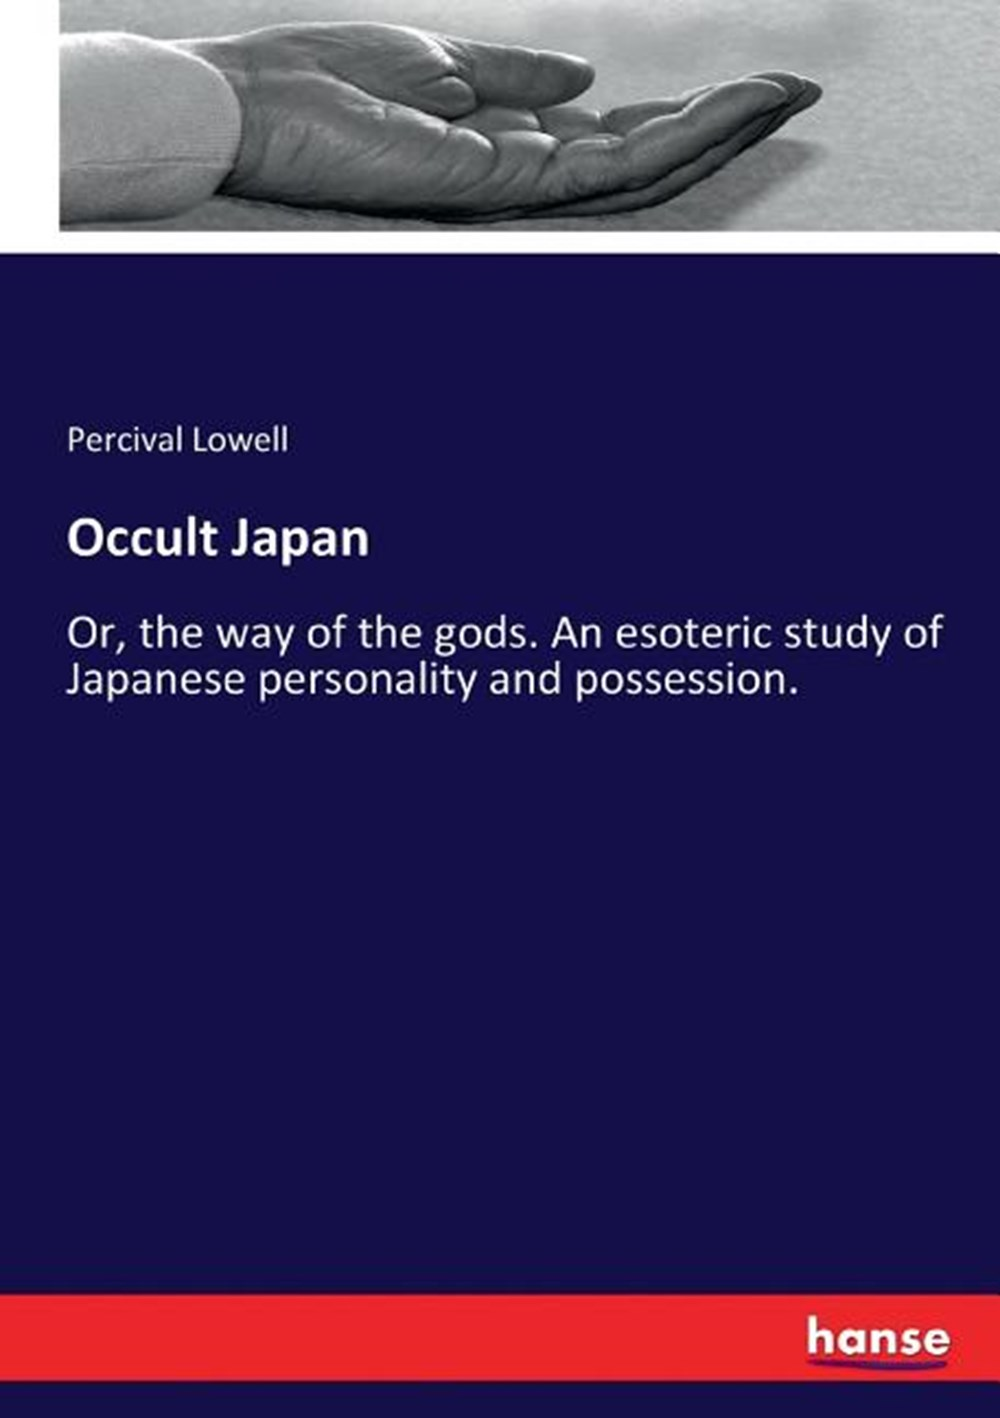 Occult Japan Or, the way of the gods. An esoteric study of Japanese personality and possession.